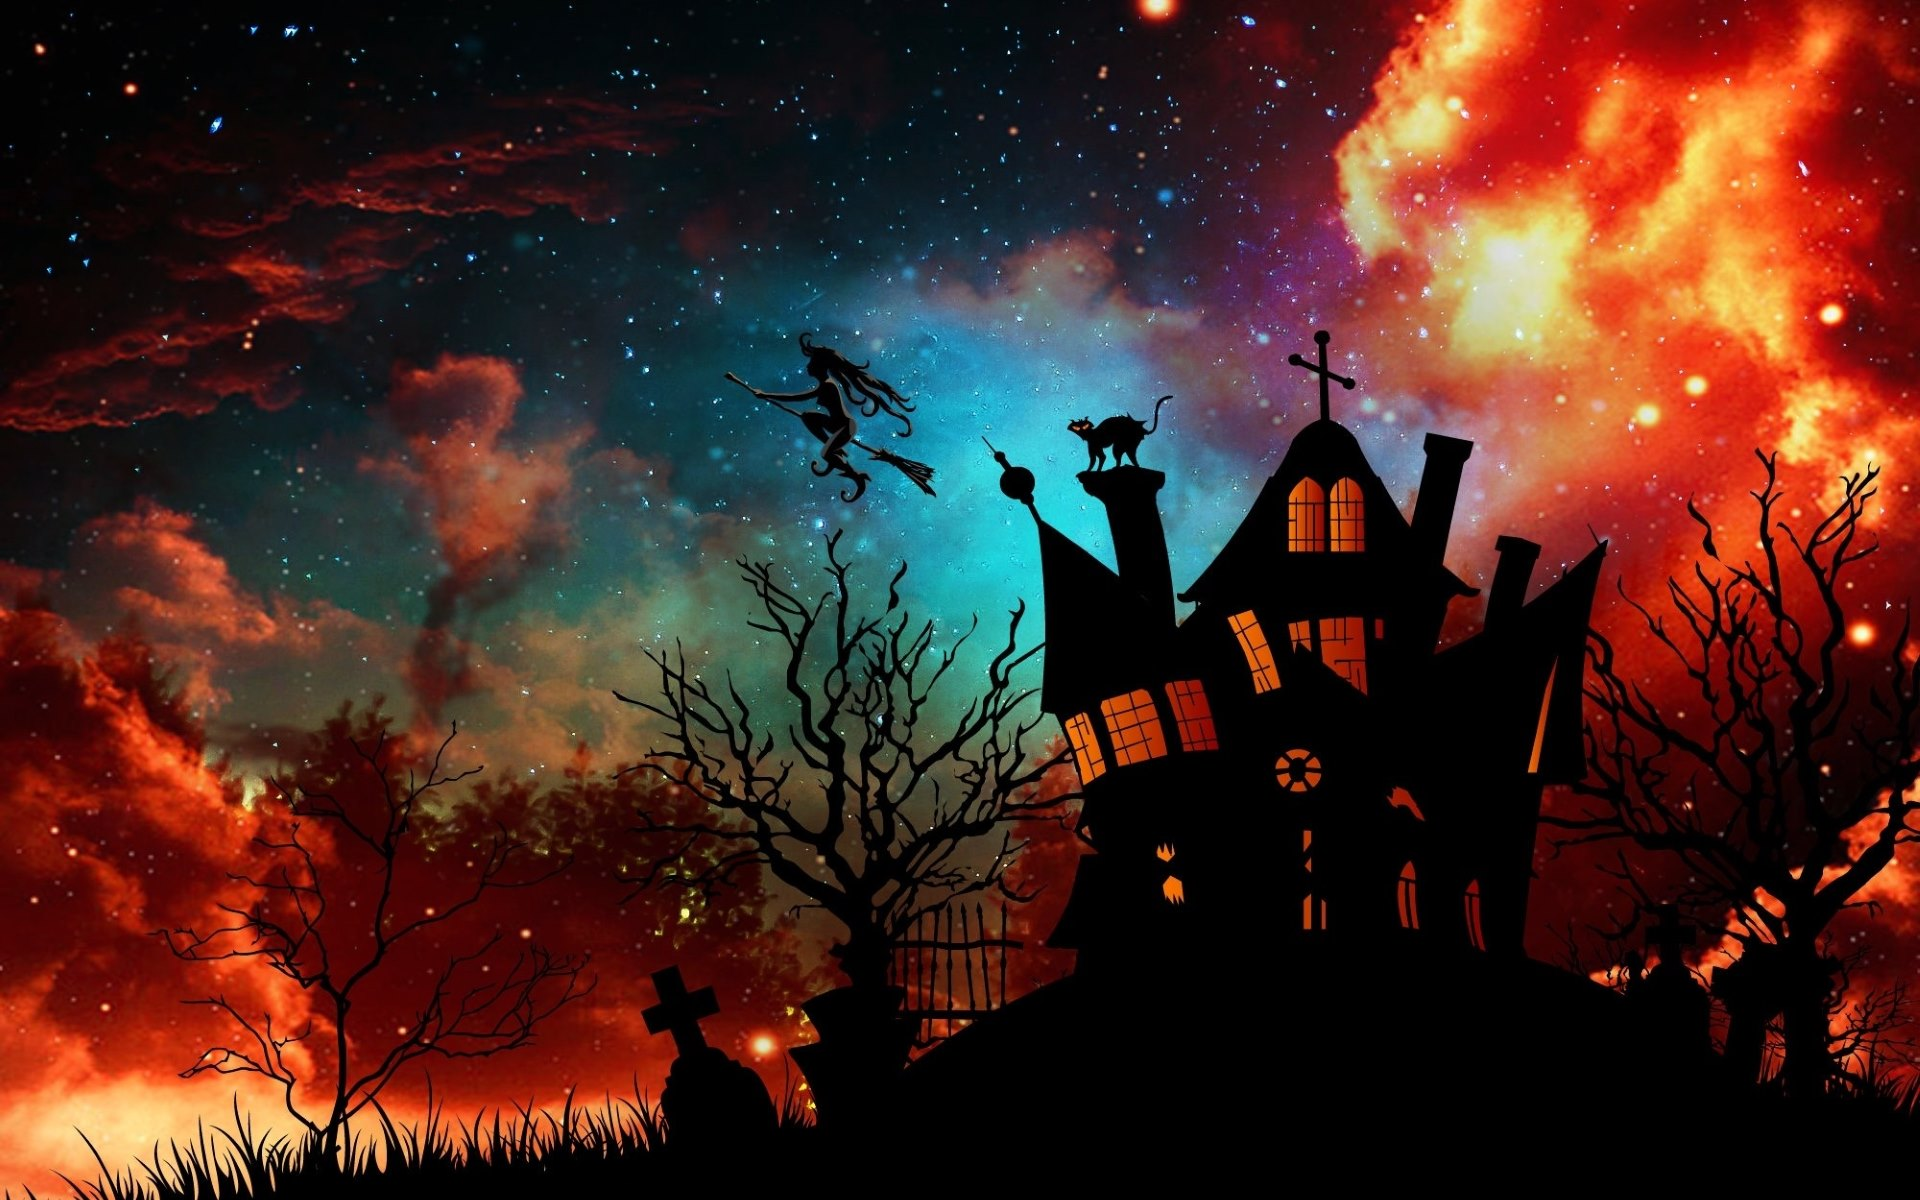 Super Halloween Wallpapers · 4K HD Desktop Backgrounds Phone Images